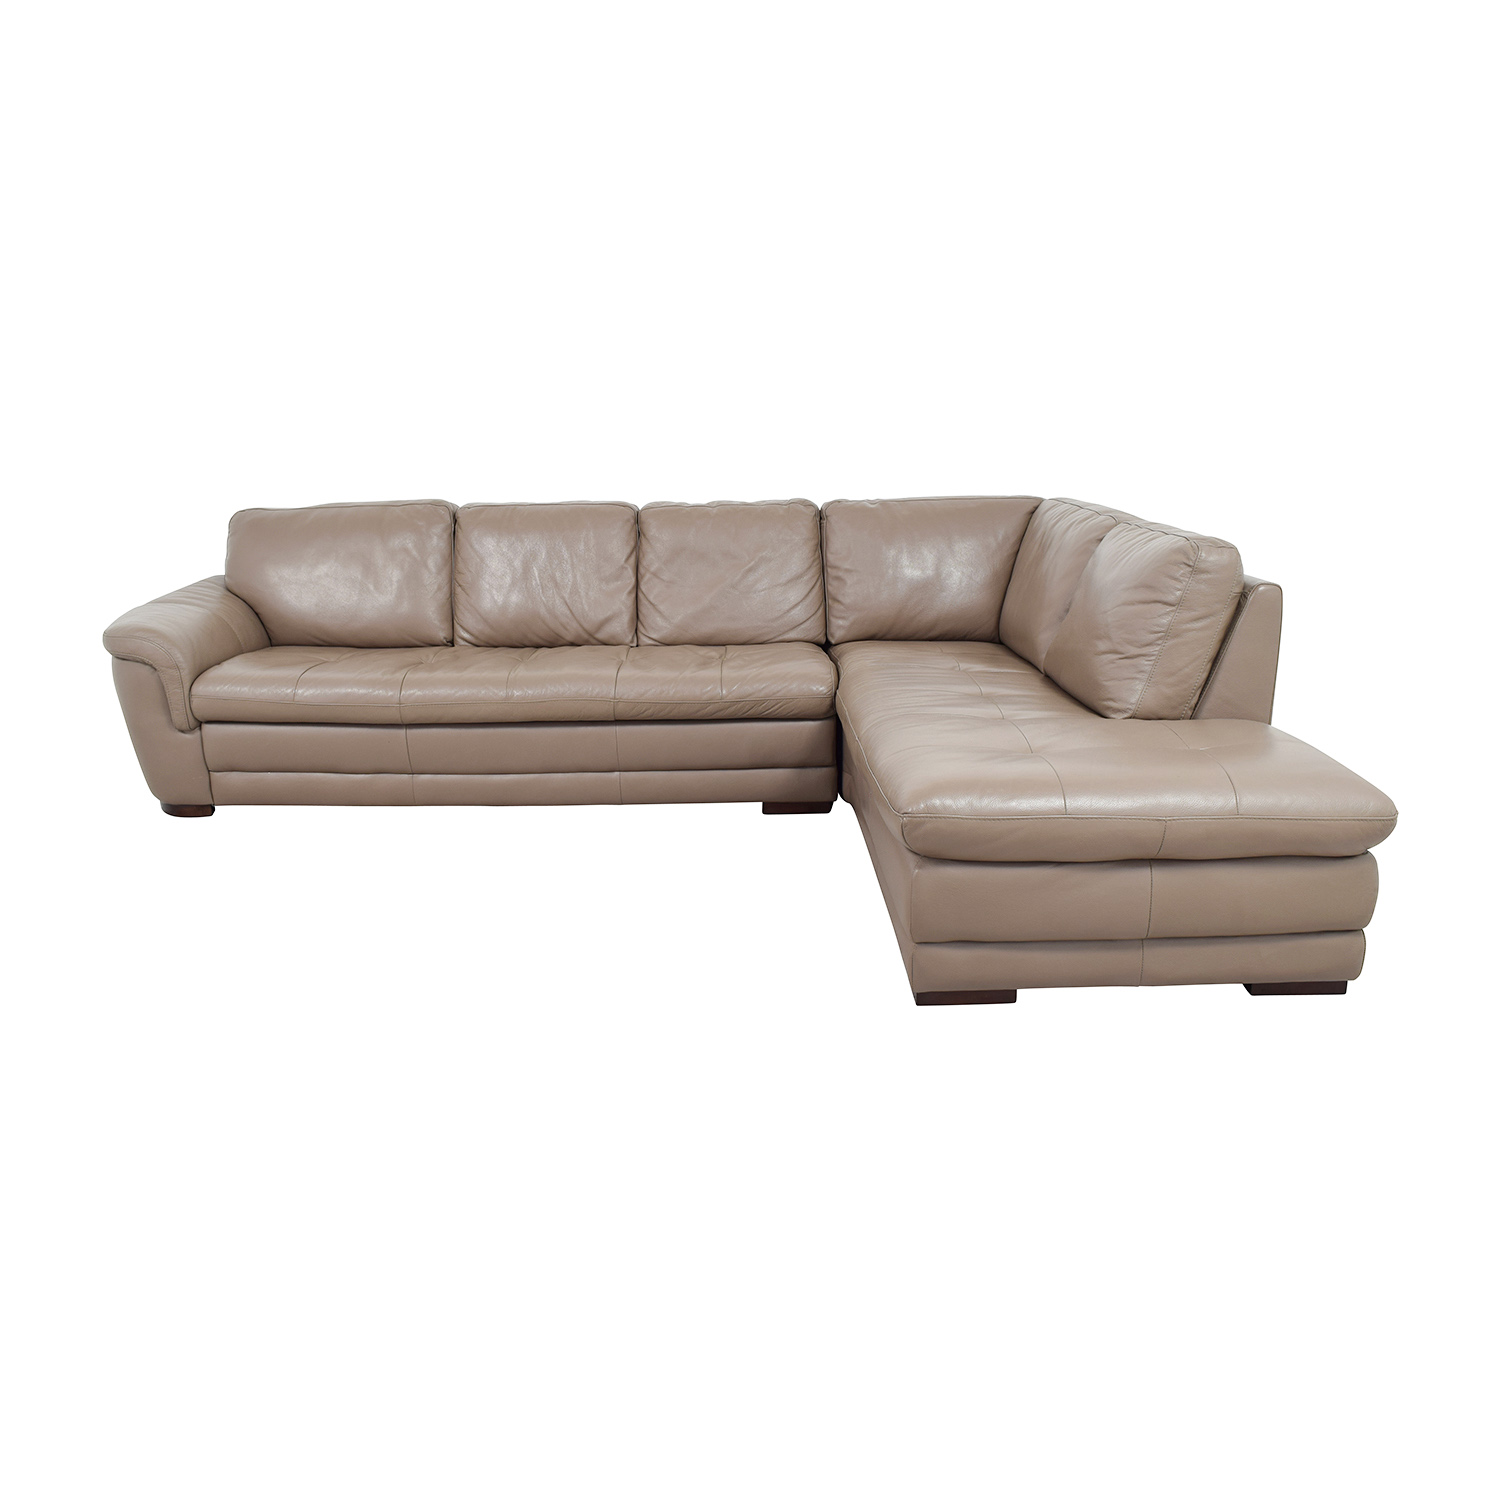 74% OFF - Raymour and Flanigan Raymour & Flanigan Tan Tufted Leather ...